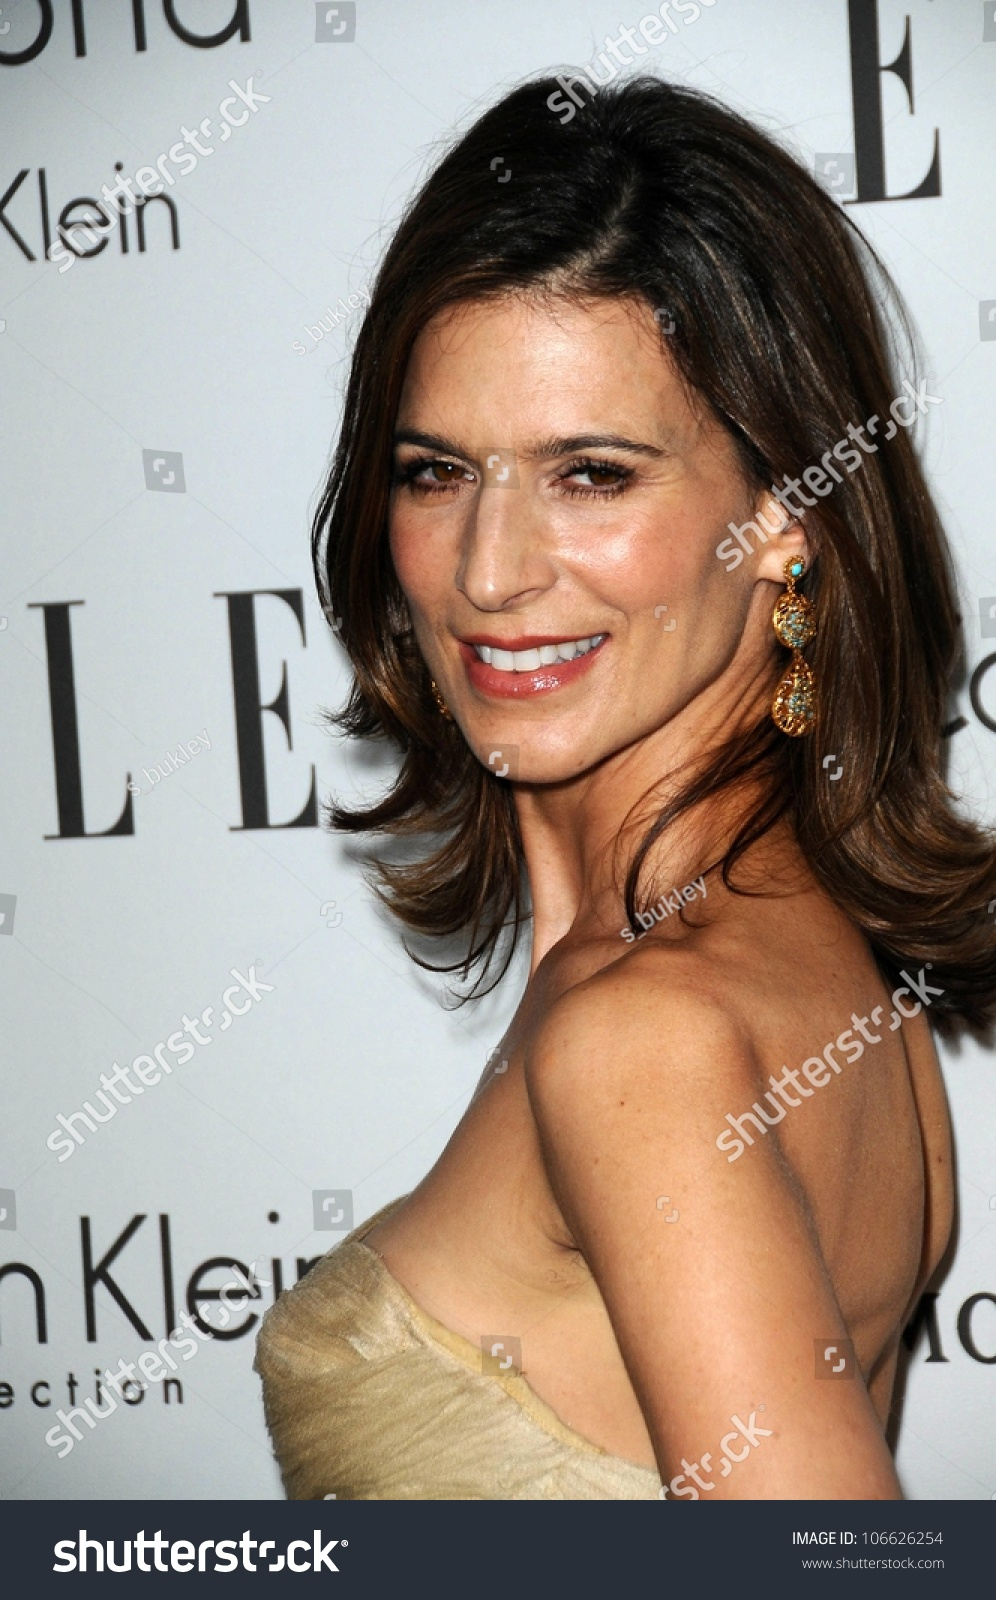 Perrey Reeves Perrey Reeves new picture